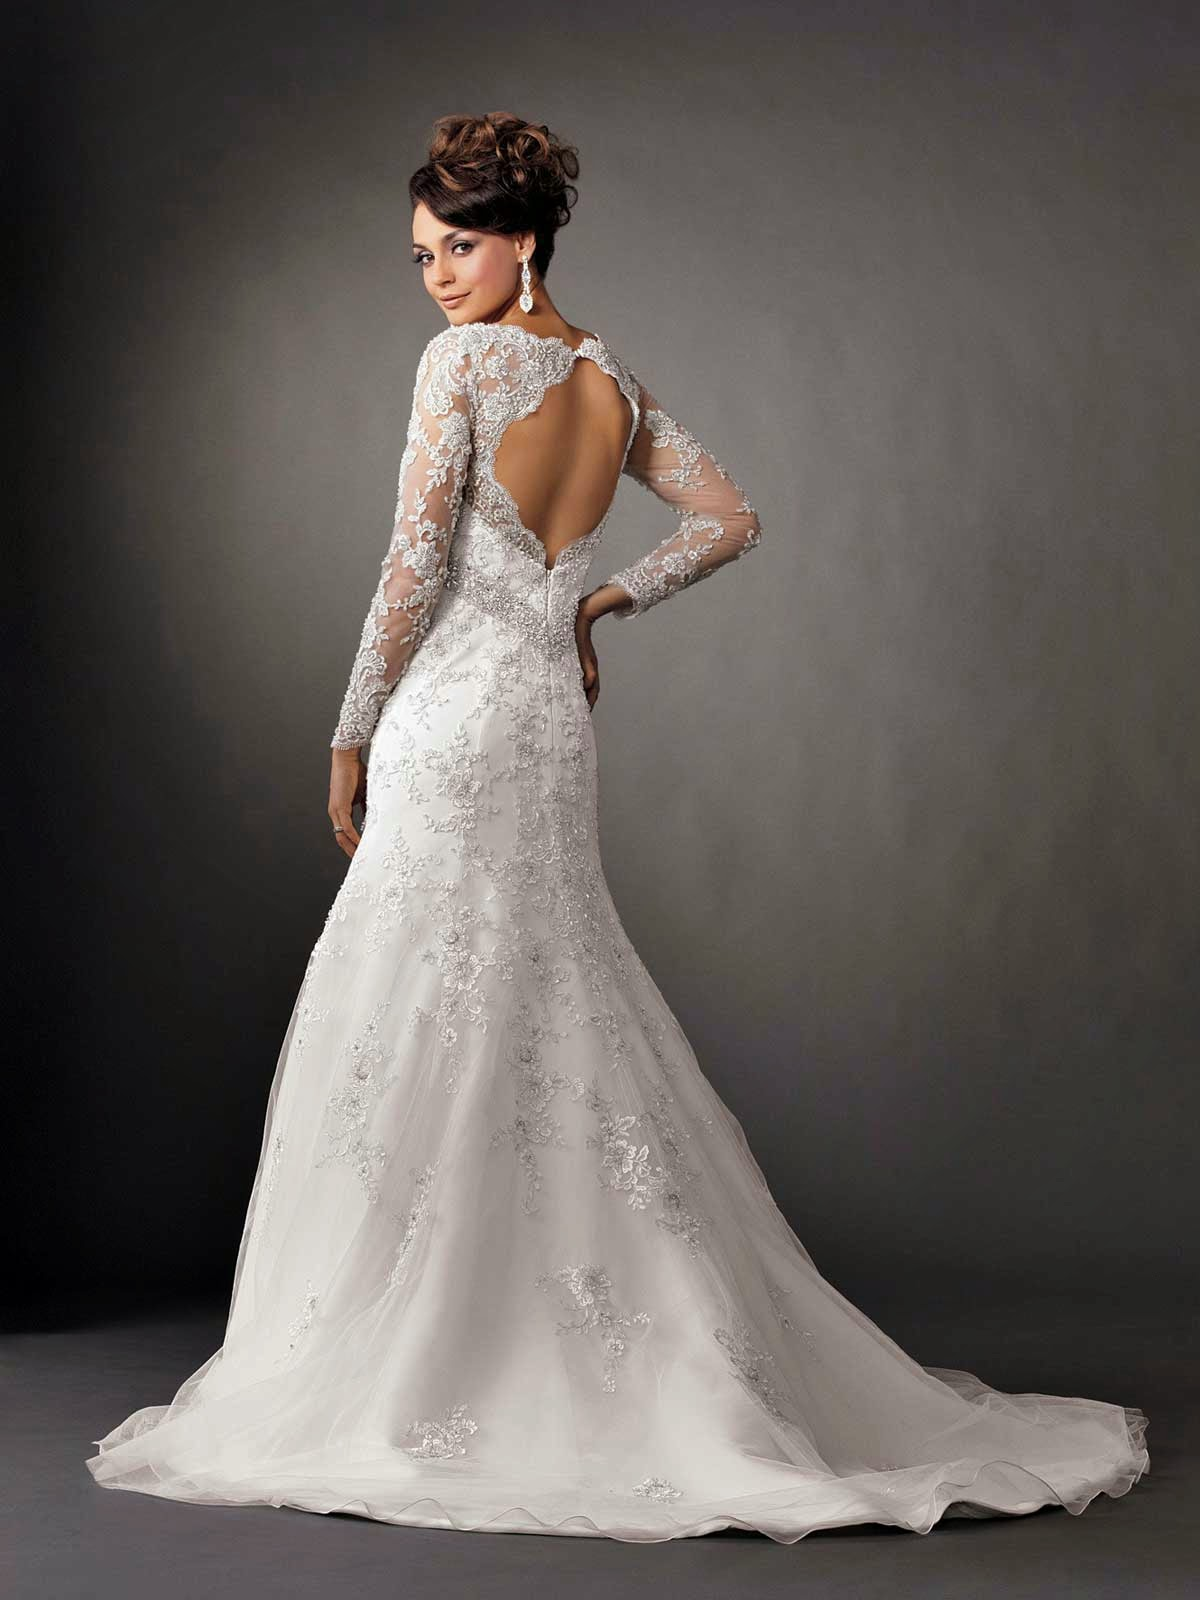 Mermaid Long Sleeves Wedding Dresses Photos HD Concepts Ideas